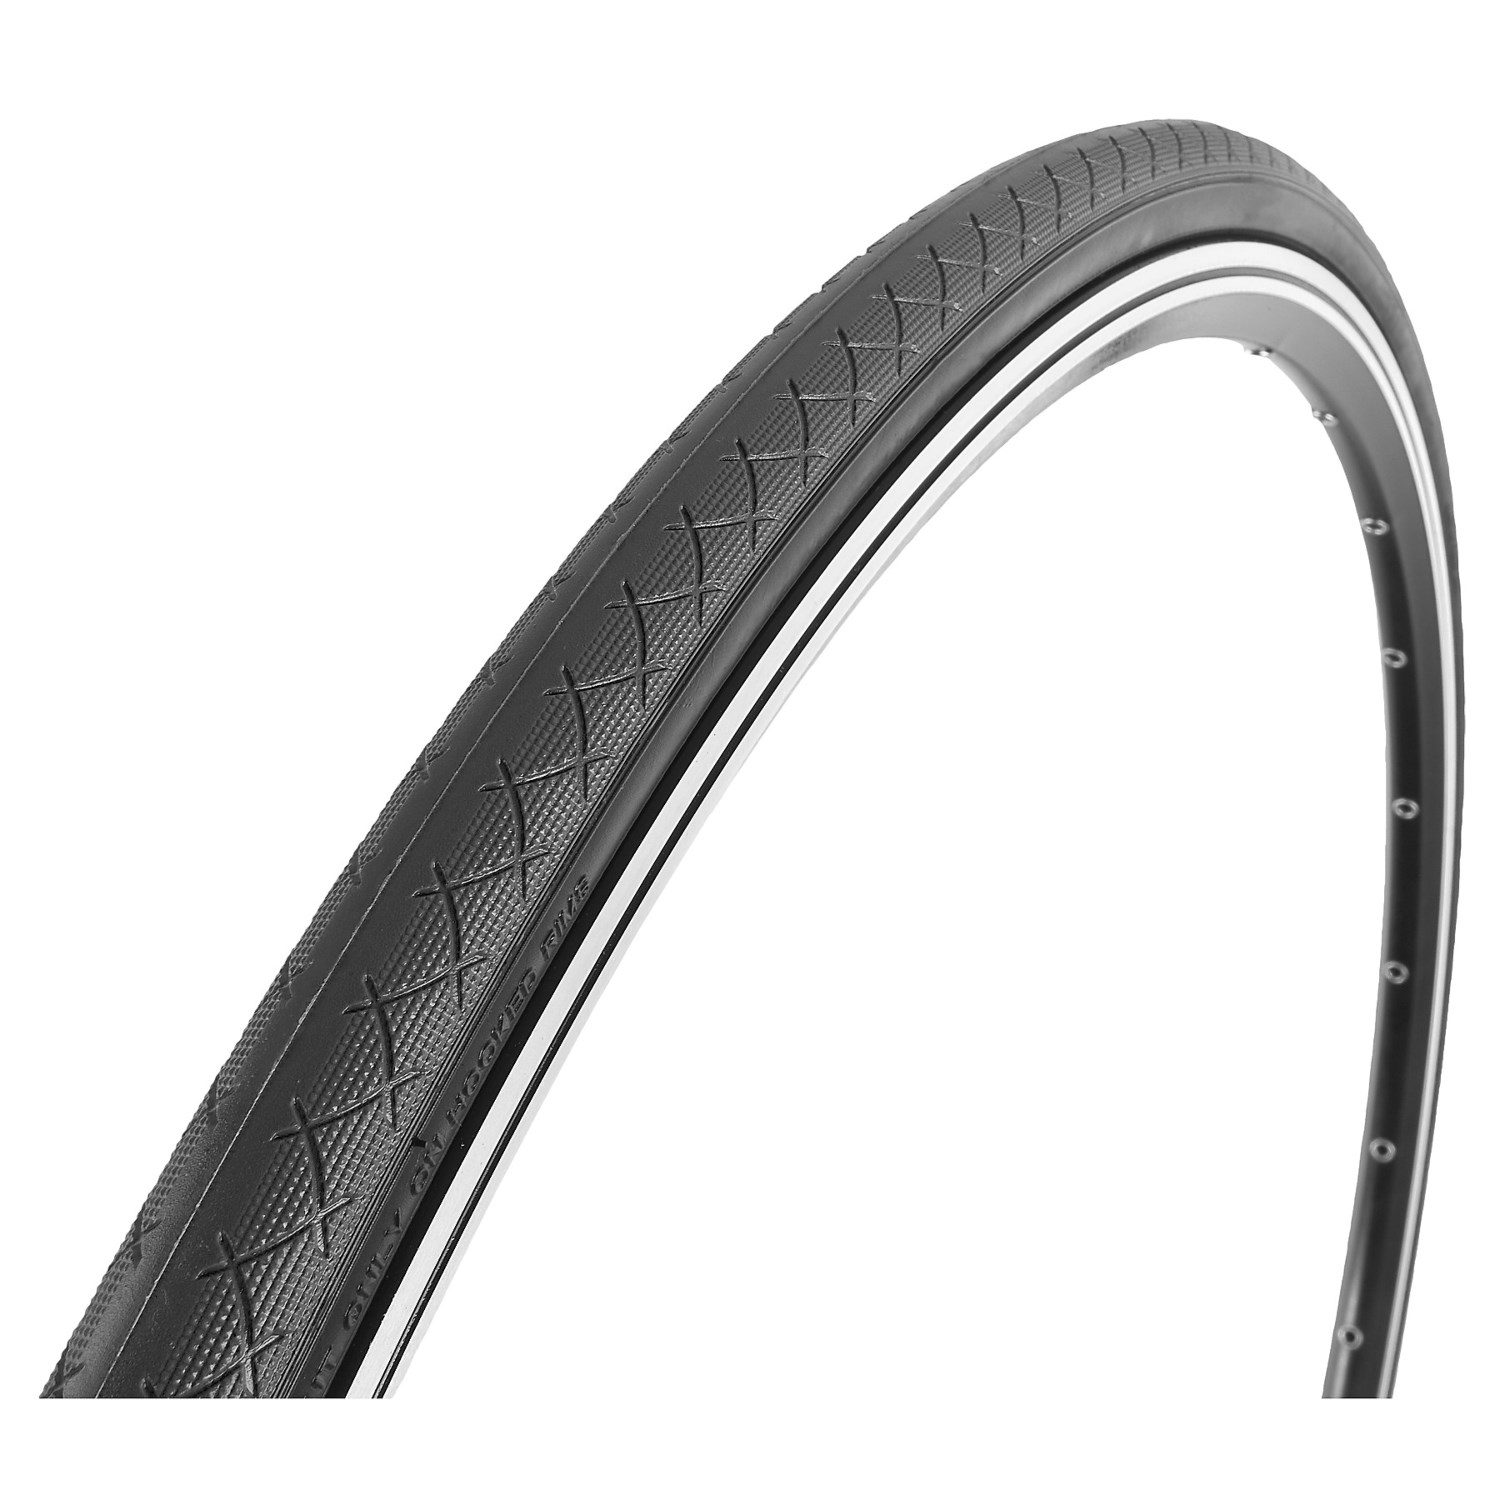 Vittoria Zaffiro Pro Folding Road Cycling Tire - Save 50